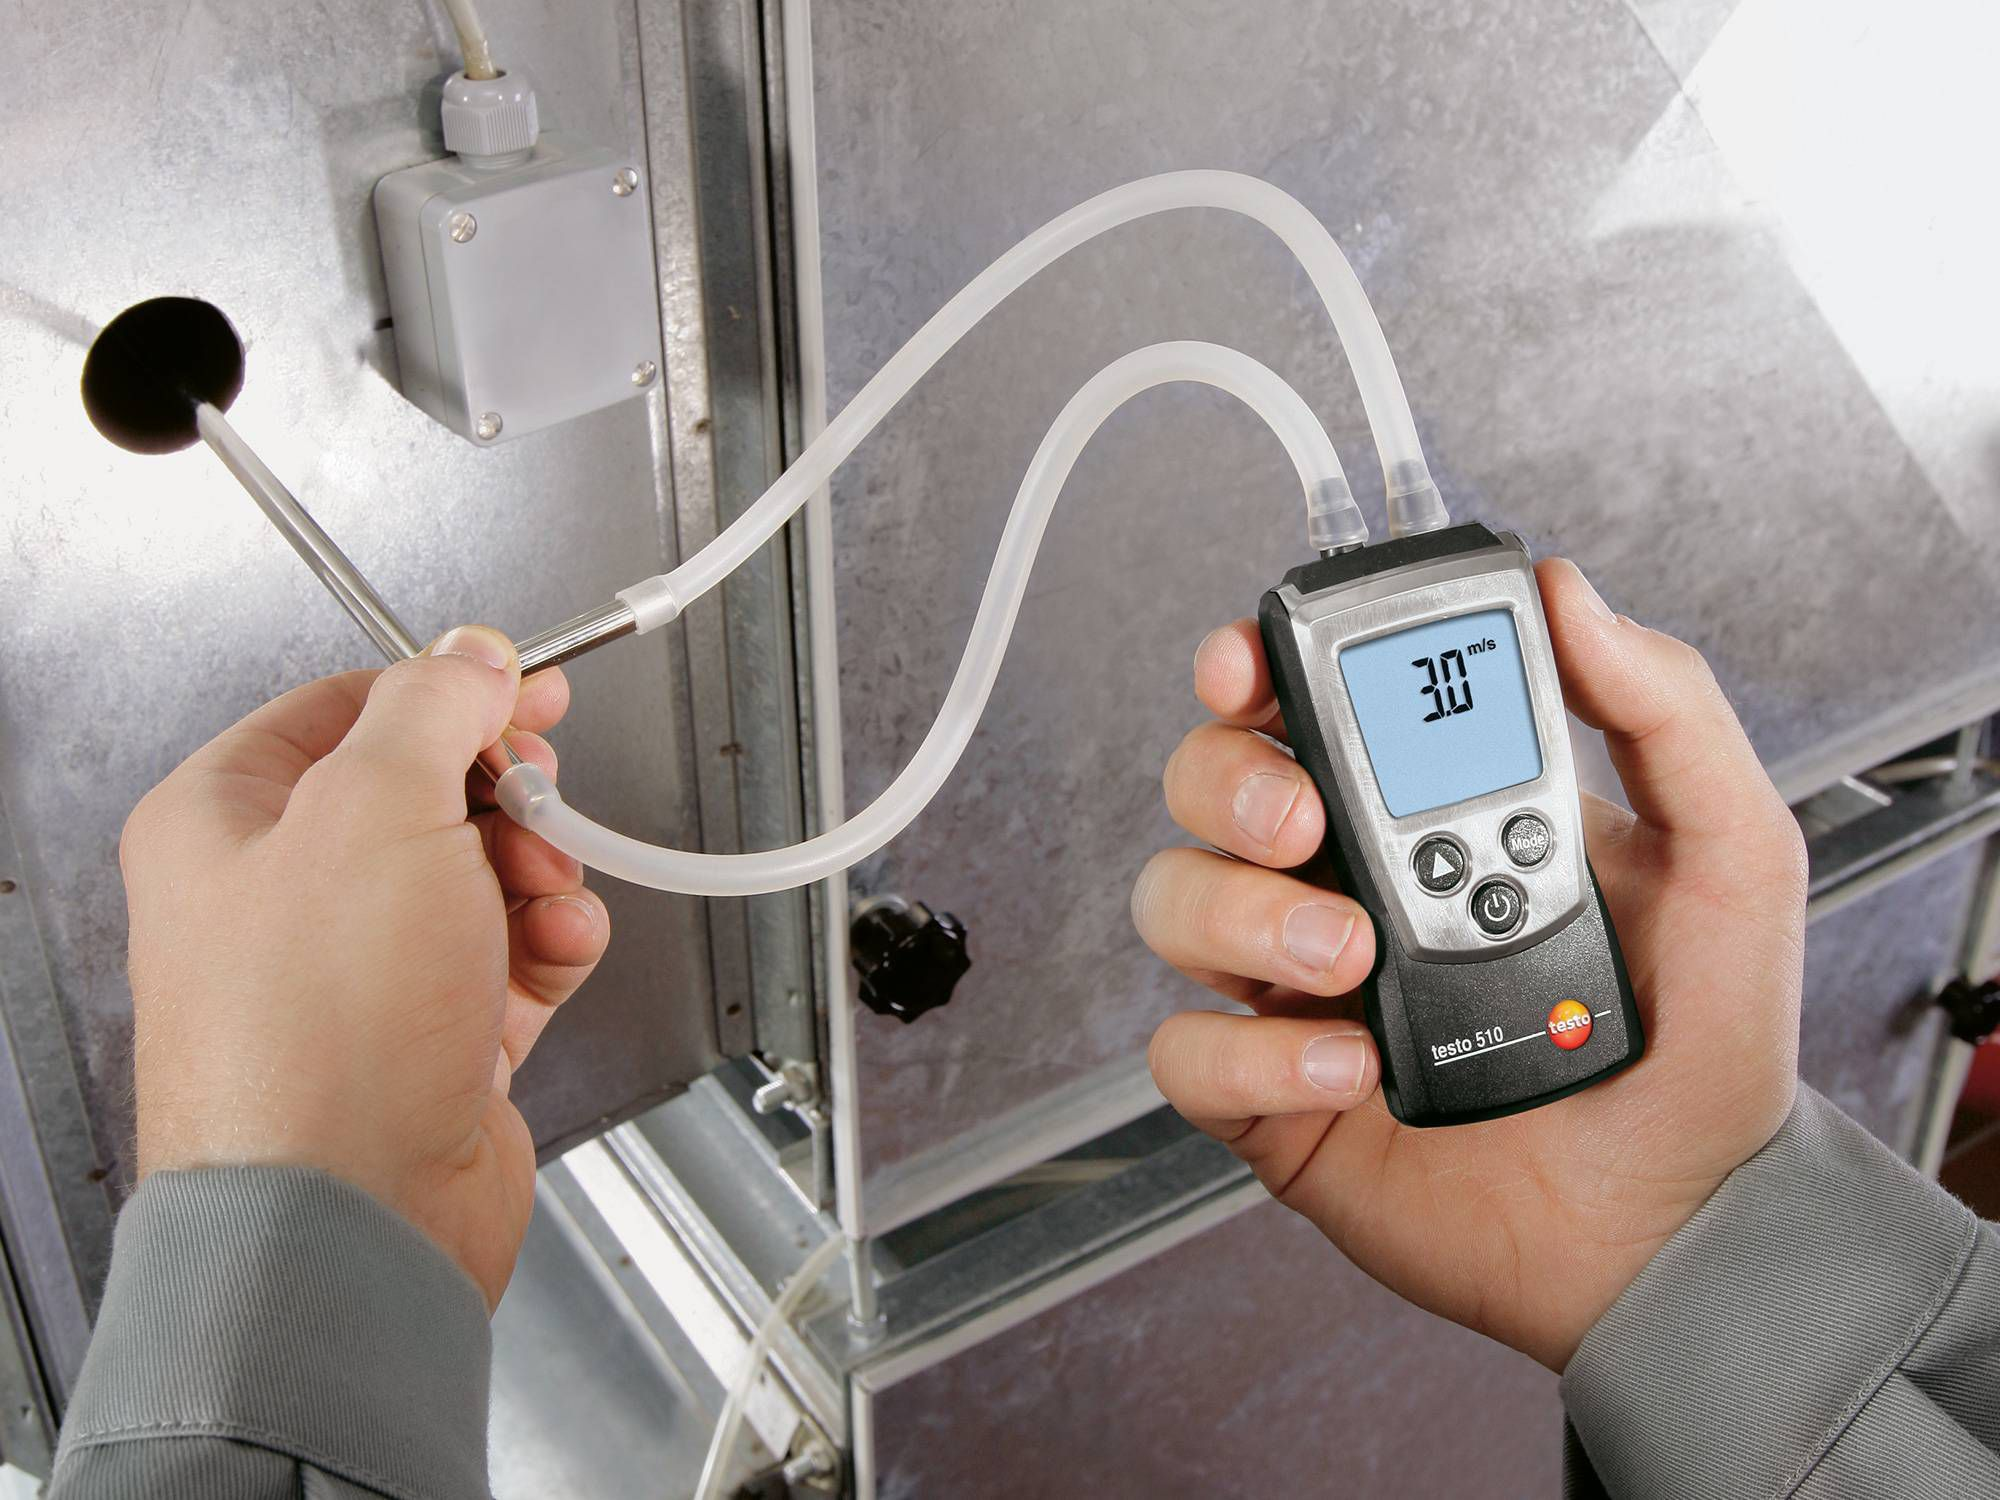 testo 510: Measurement in ventilation ducts